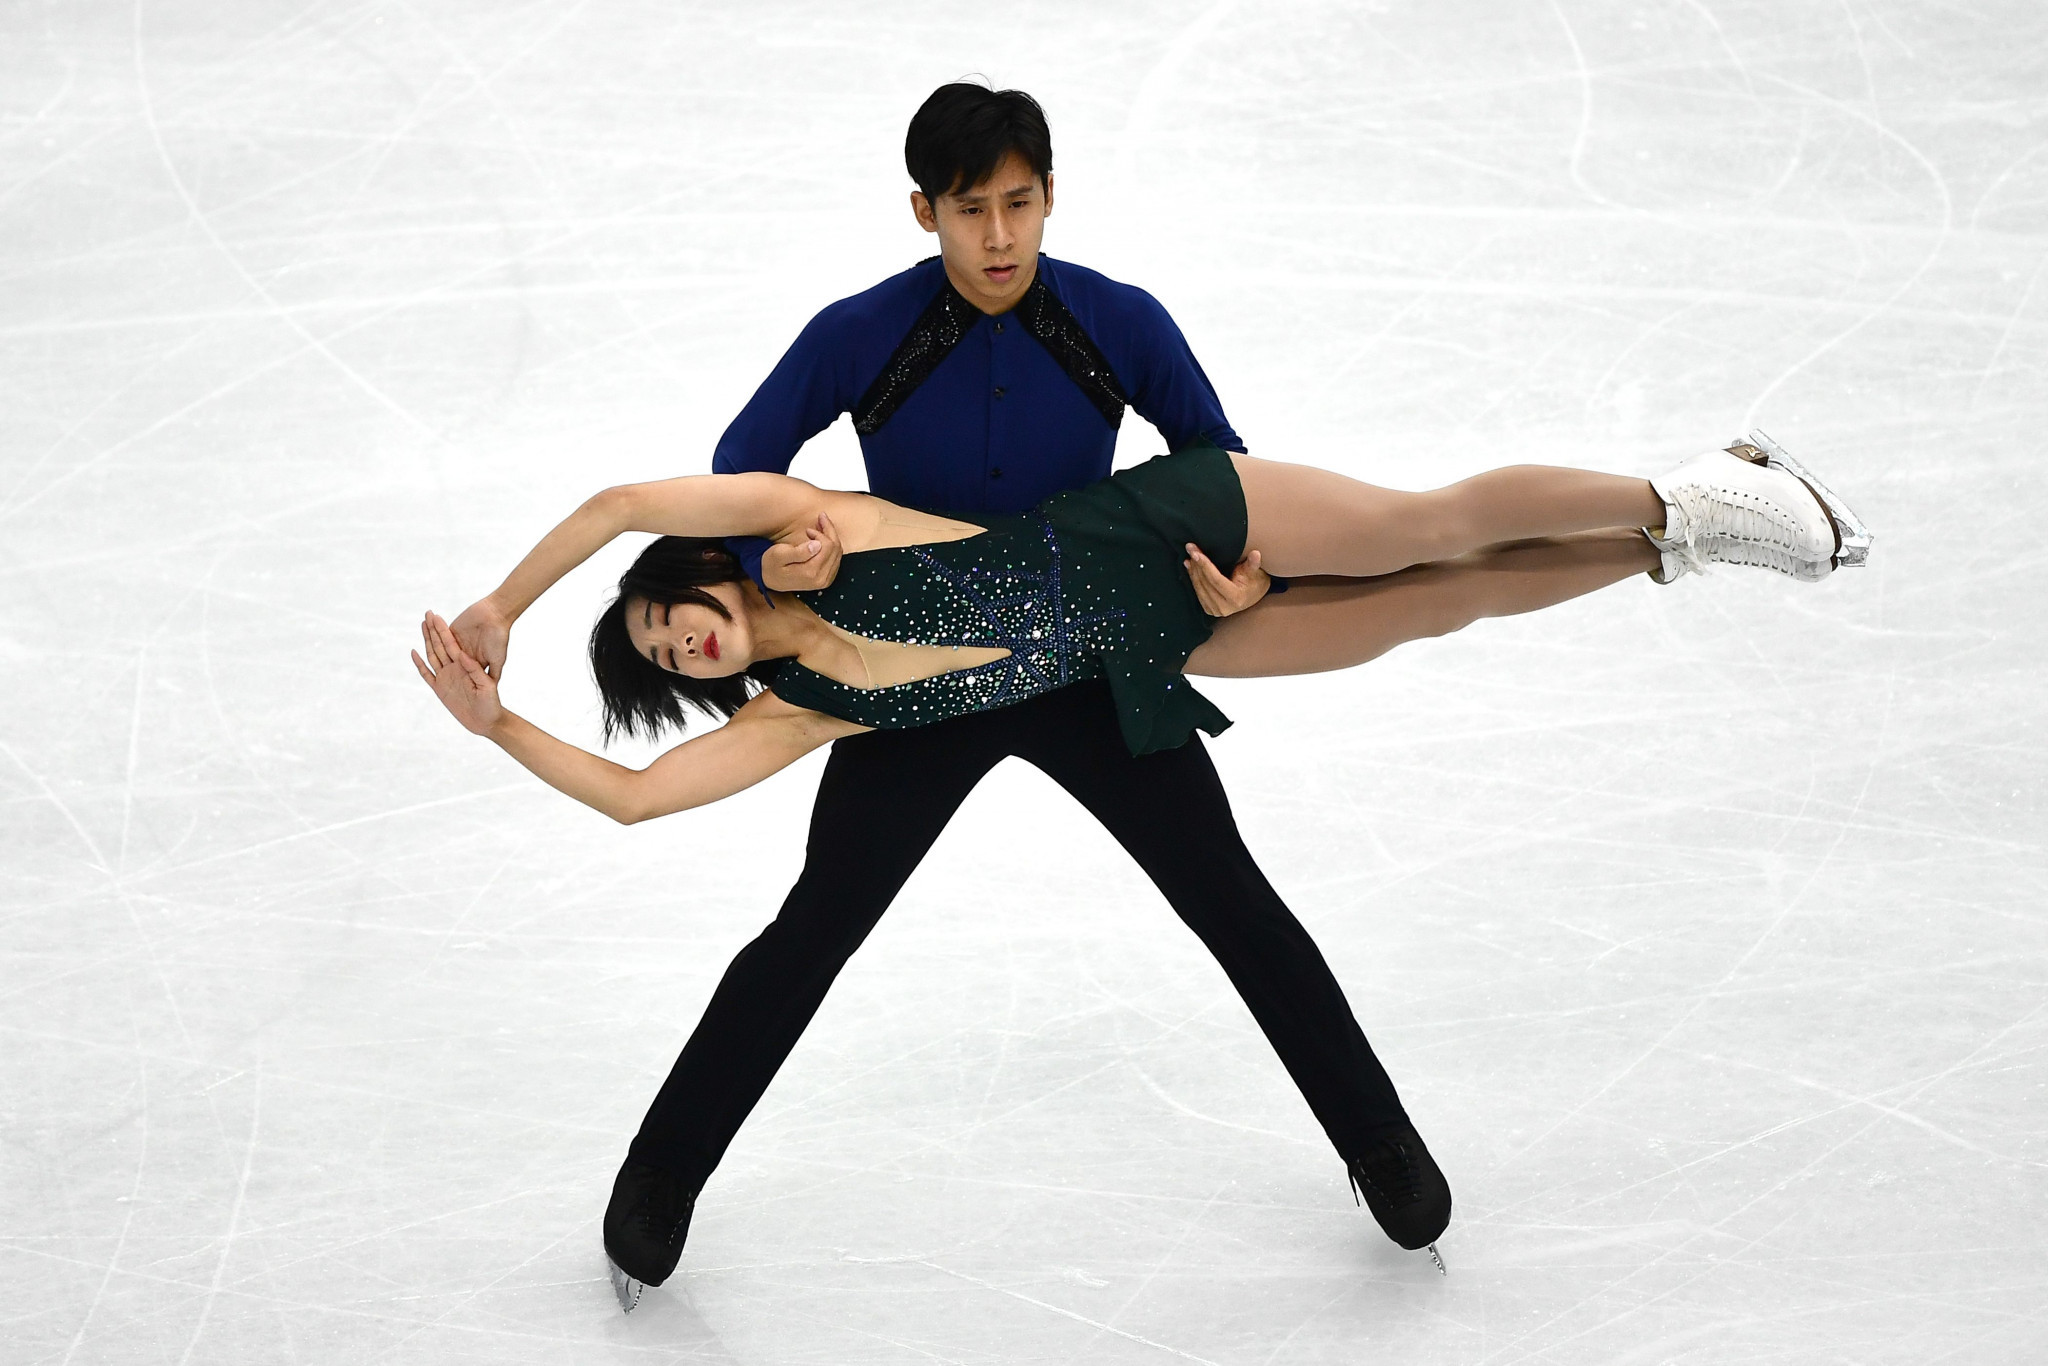 Wenjing Sui and Cong Han will aim for a sixth pairs title ©Getty Images